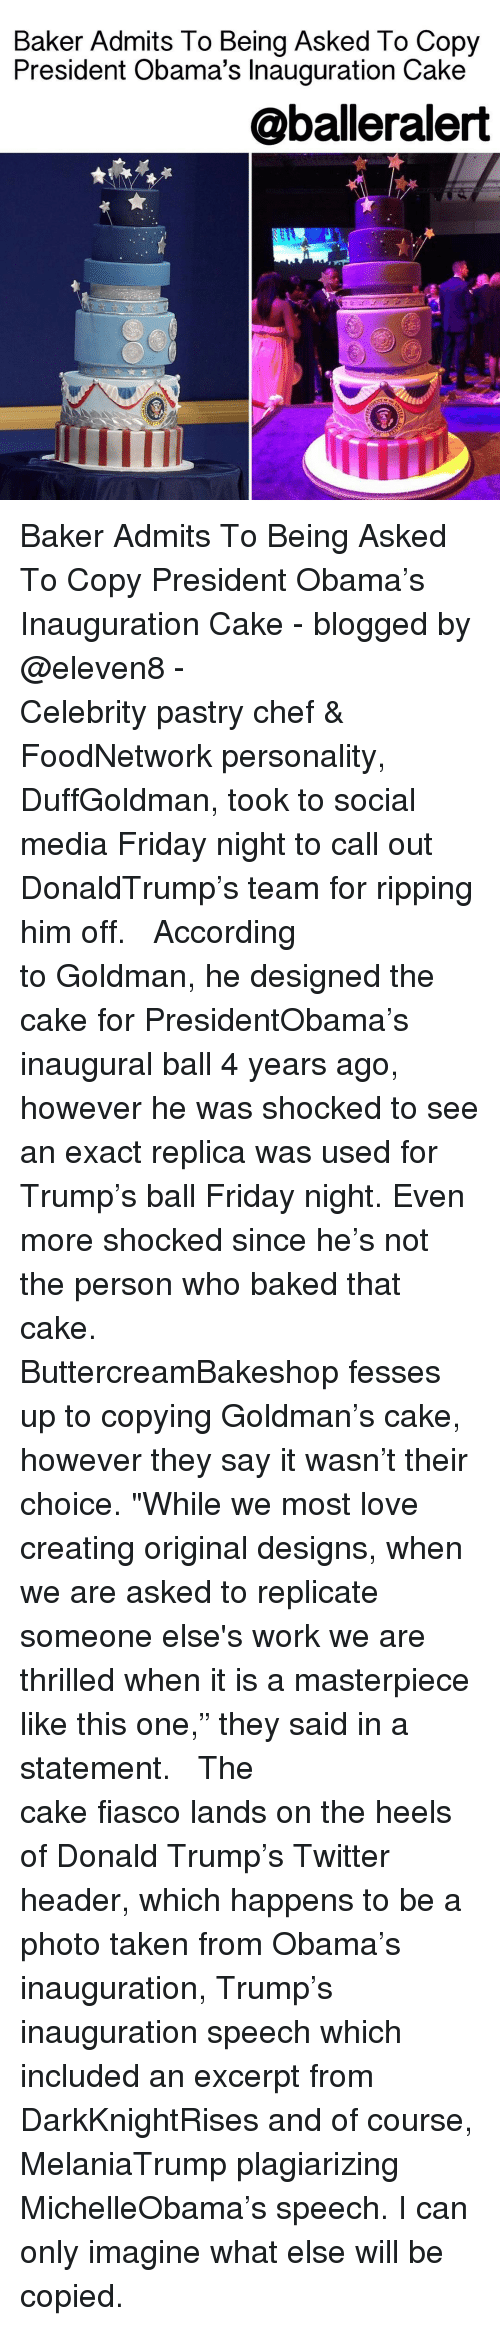 "Baked, Memes, and Chef: Baker Admits To Being Asked To Copy  President Obama's Inauguration Cake  @balleralert Baker Admits To Being Asked To Copy President Obama's Inauguration Cake - blogged by @eleven8 - ⠀⠀⠀⠀⠀⠀⠀⠀⠀ ⠀⠀⠀⠀⠀⠀⠀⠀⠀ Celebrity pastry chef & FoodNetwork personality, DuffGoldman, took to social media Friday night to call out DonaldTrump's team for ripping him off. ⠀⠀⠀⠀⠀⠀⠀⠀⠀ ⠀⠀⠀⠀⠀⠀⠀⠀⠀ According to Goldman, he designed the cake for PresidentObama's inaugural ball 4 years ago, however he was shocked to see an exact replica was used for Trump's ball Friday night. Even more shocked since he's not the person who baked that cake. ⠀⠀⠀⠀⠀⠀⠀⠀⠀ ⠀⠀⠀⠀⠀⠀⠀⠀⠀ ButtercreamBakeshop fesses up to copying Goldman's cake, however they say it wasn't their choice. ""While we most love creating original designs, when we are asked to replicate someone else's work we are thrilled when it is a masterpiece like this one,"" they said in a statement. ⠀⠀⠀⠀⠀⠀⠀⠀⠀ ⠀⠀⠀⠀⠀⠀⠀⠀⠀ The cake fiasco lands on the heels of Donald Trump's Twitter header, which happens to be a photo taken from Obama's inauguration, Trump's inauguration speech which included an excerpt from DarkKnightRises and of course, MelaniaTrump plagiarizing MichelleObama's speech. I can only imagine what else will be copied."